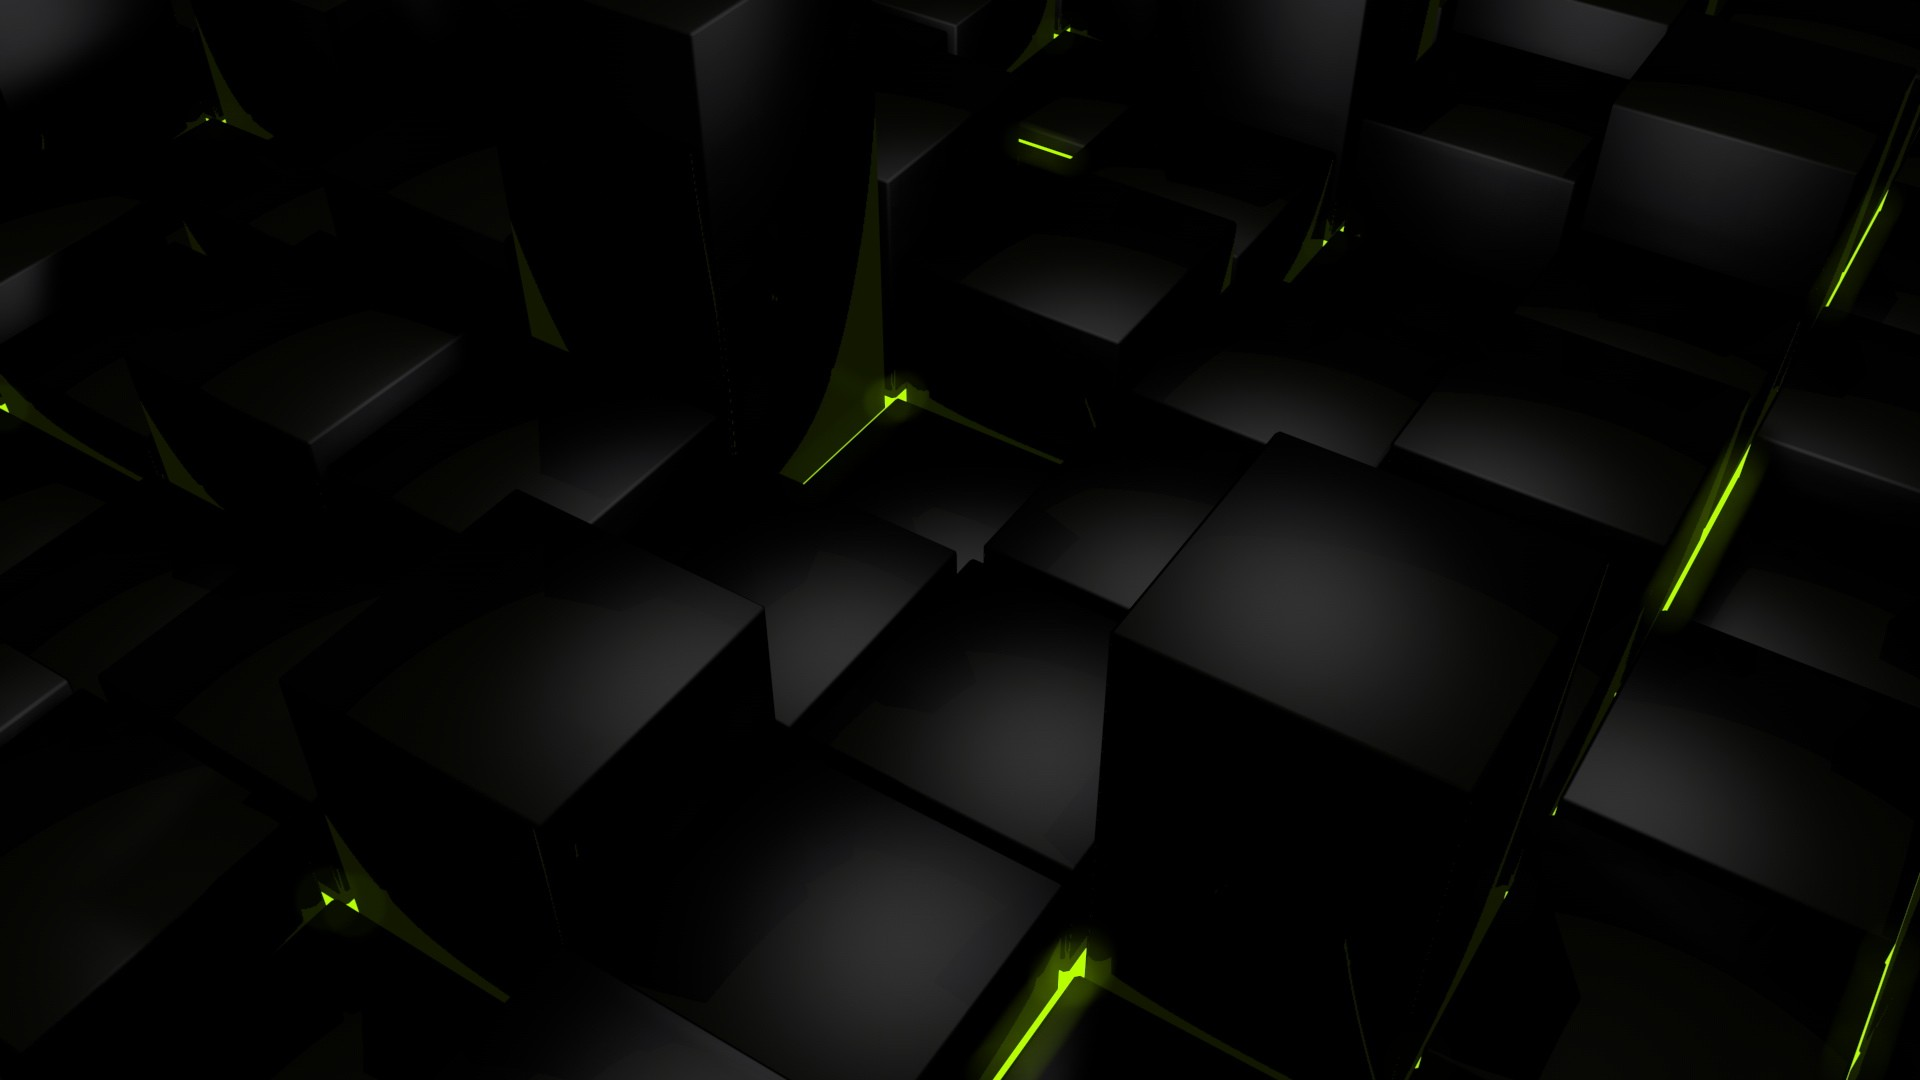 dark cubes glow computer graphics wallpaper background 1920x1080